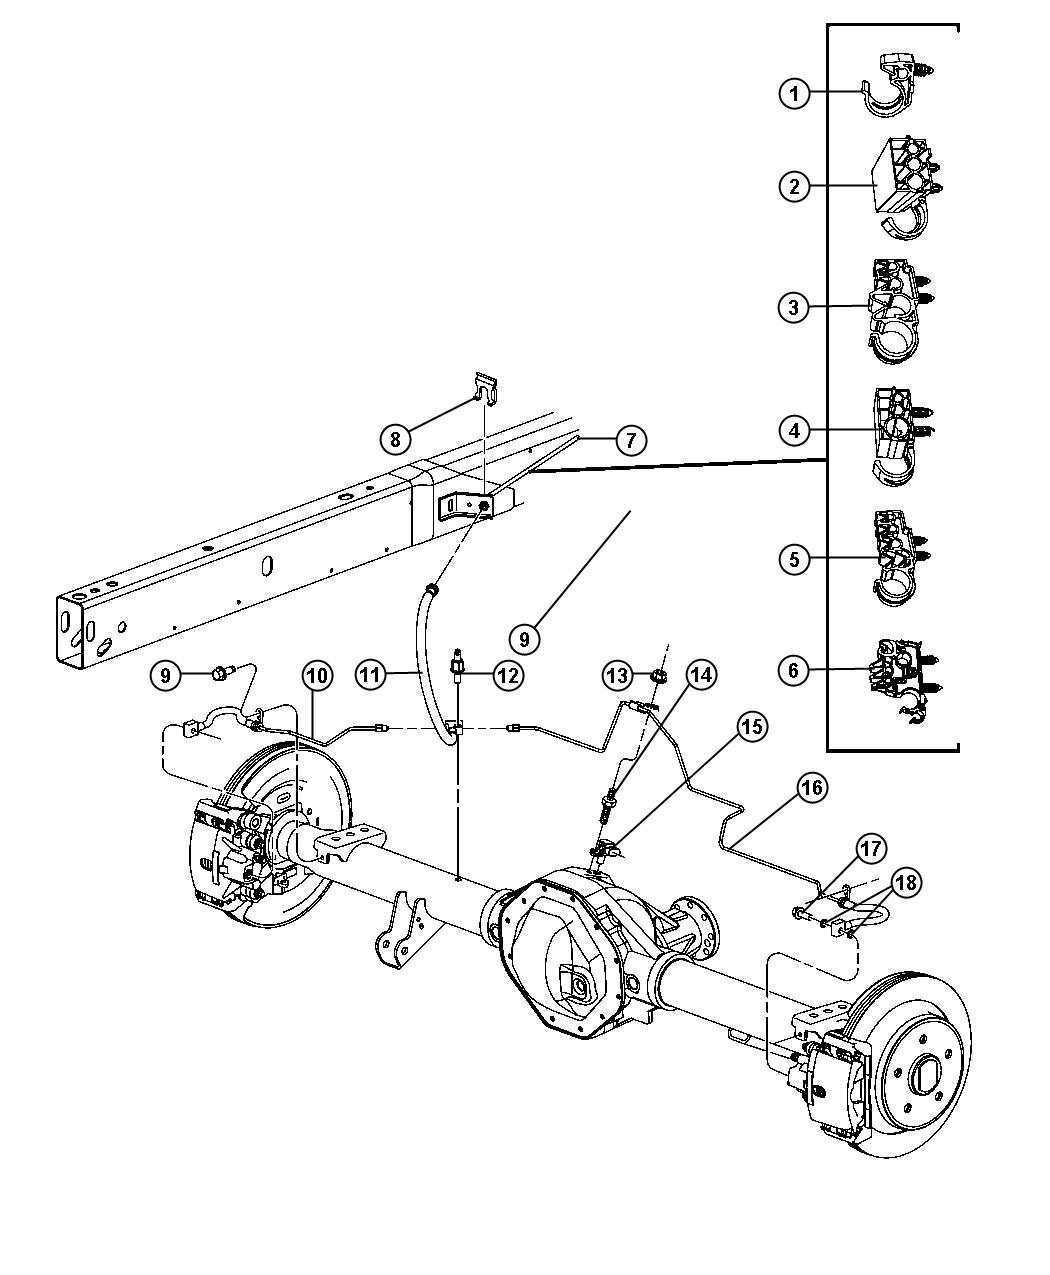 Dodge Ram Clip Tube 4 Way Chassis Openings But